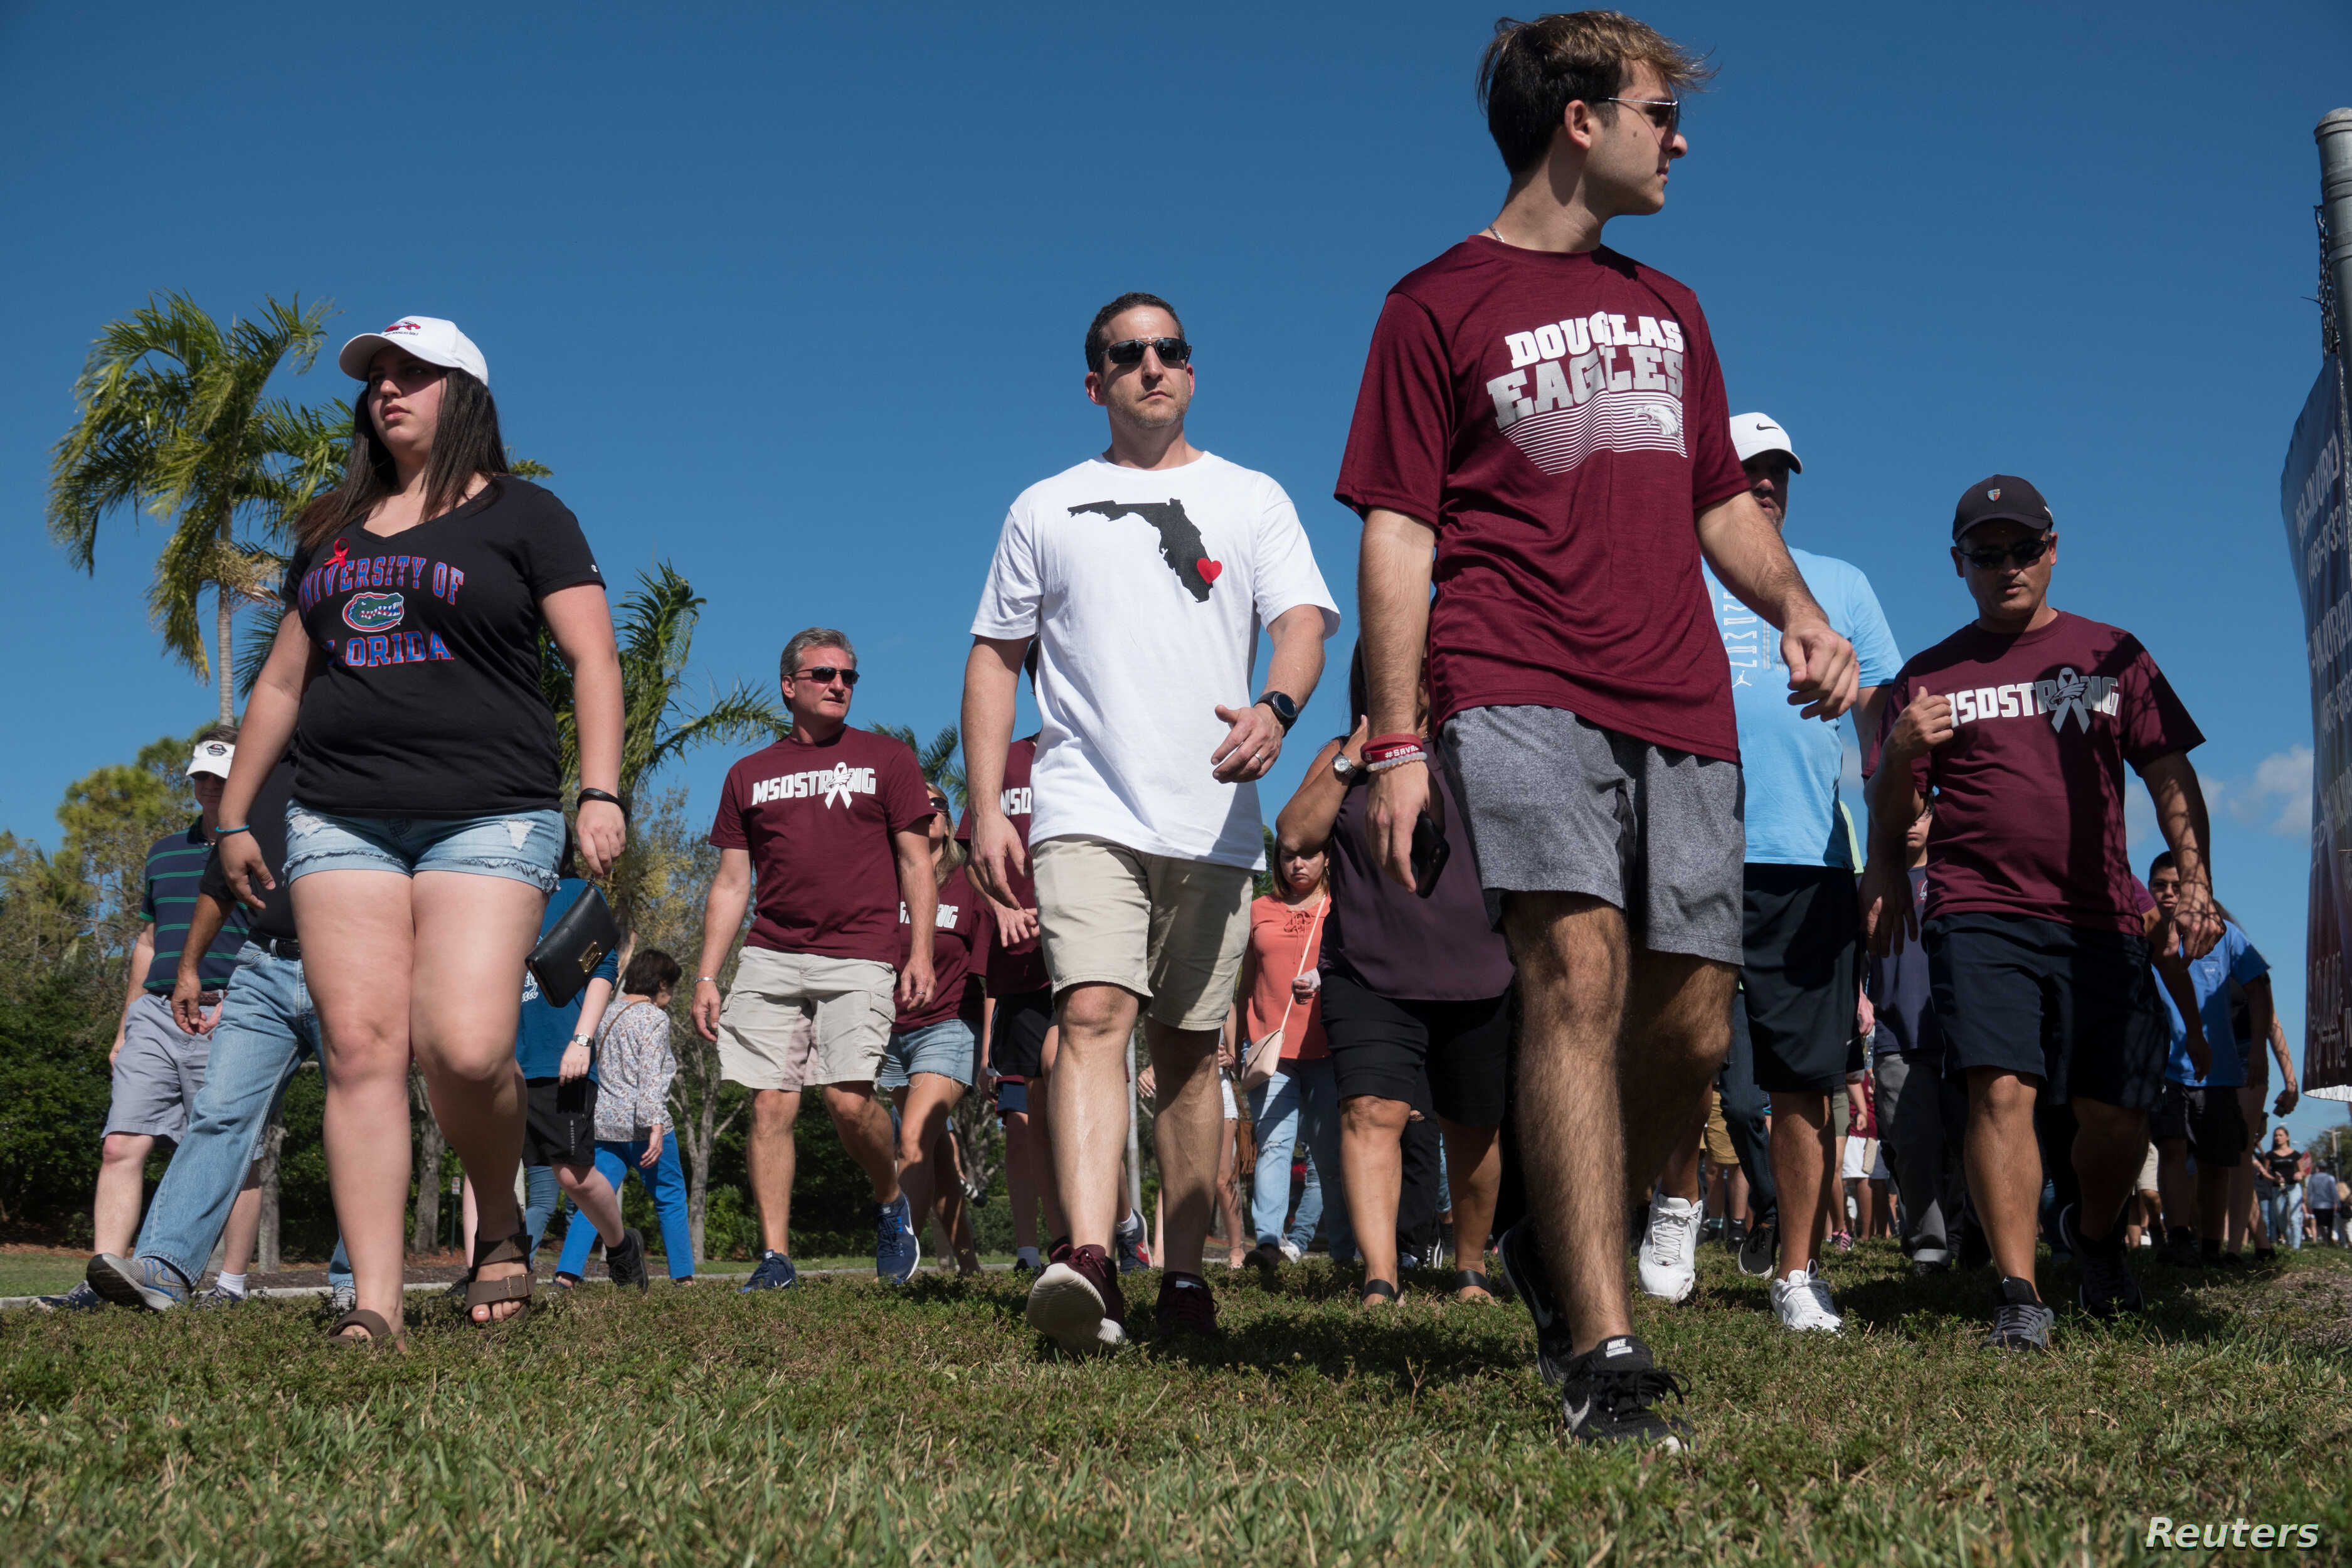 Students and parents arrive for voluntary campus orientation at the Marjory Stoneman Douglas High School, Feb. 25, 2018. The school reopens Wednesday, following the Valentine's Day mass shooting in Parkland, Florida.